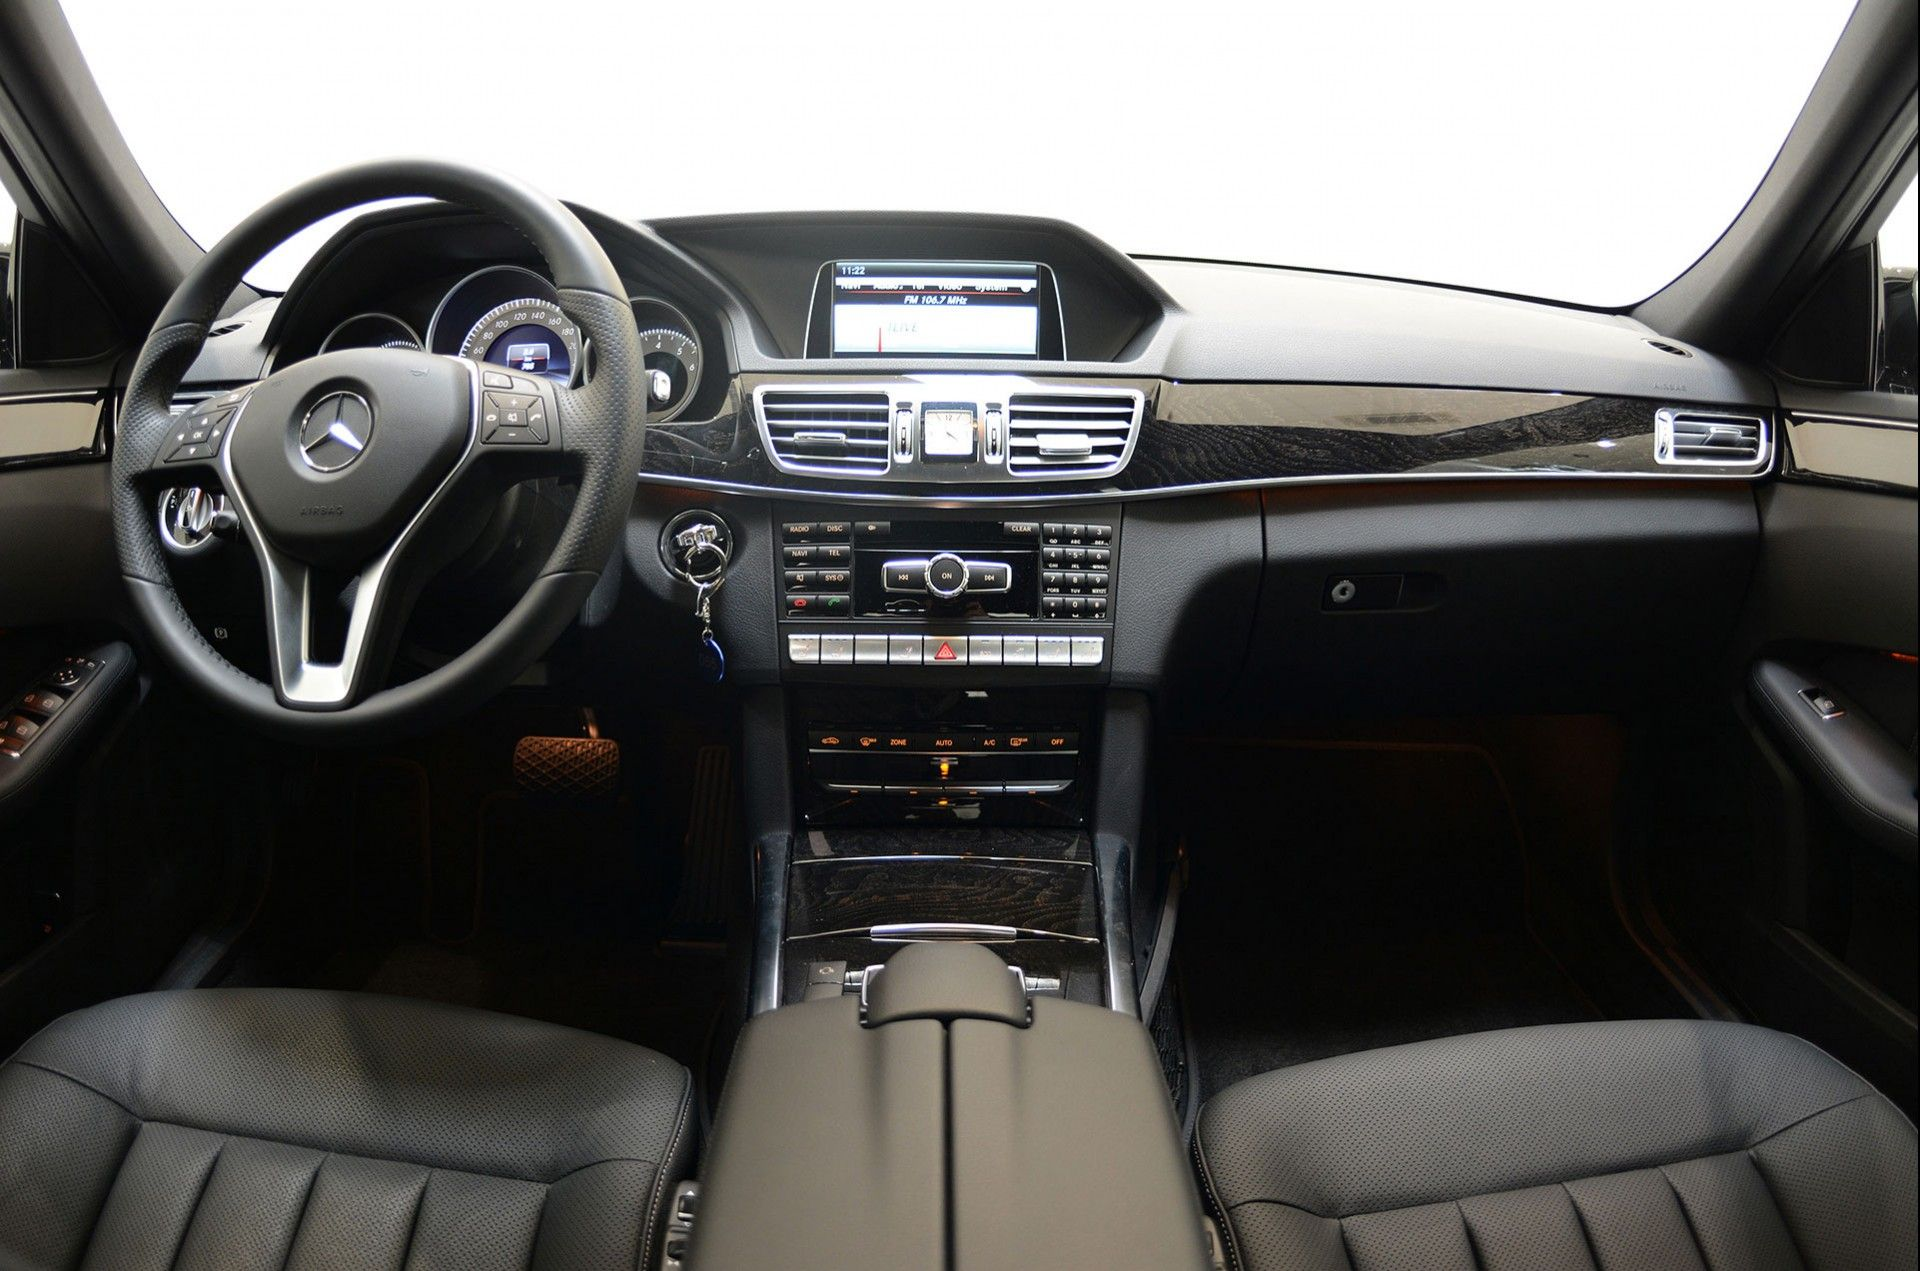 Image for D4 2 Mercedes Benz E250 CDI interior